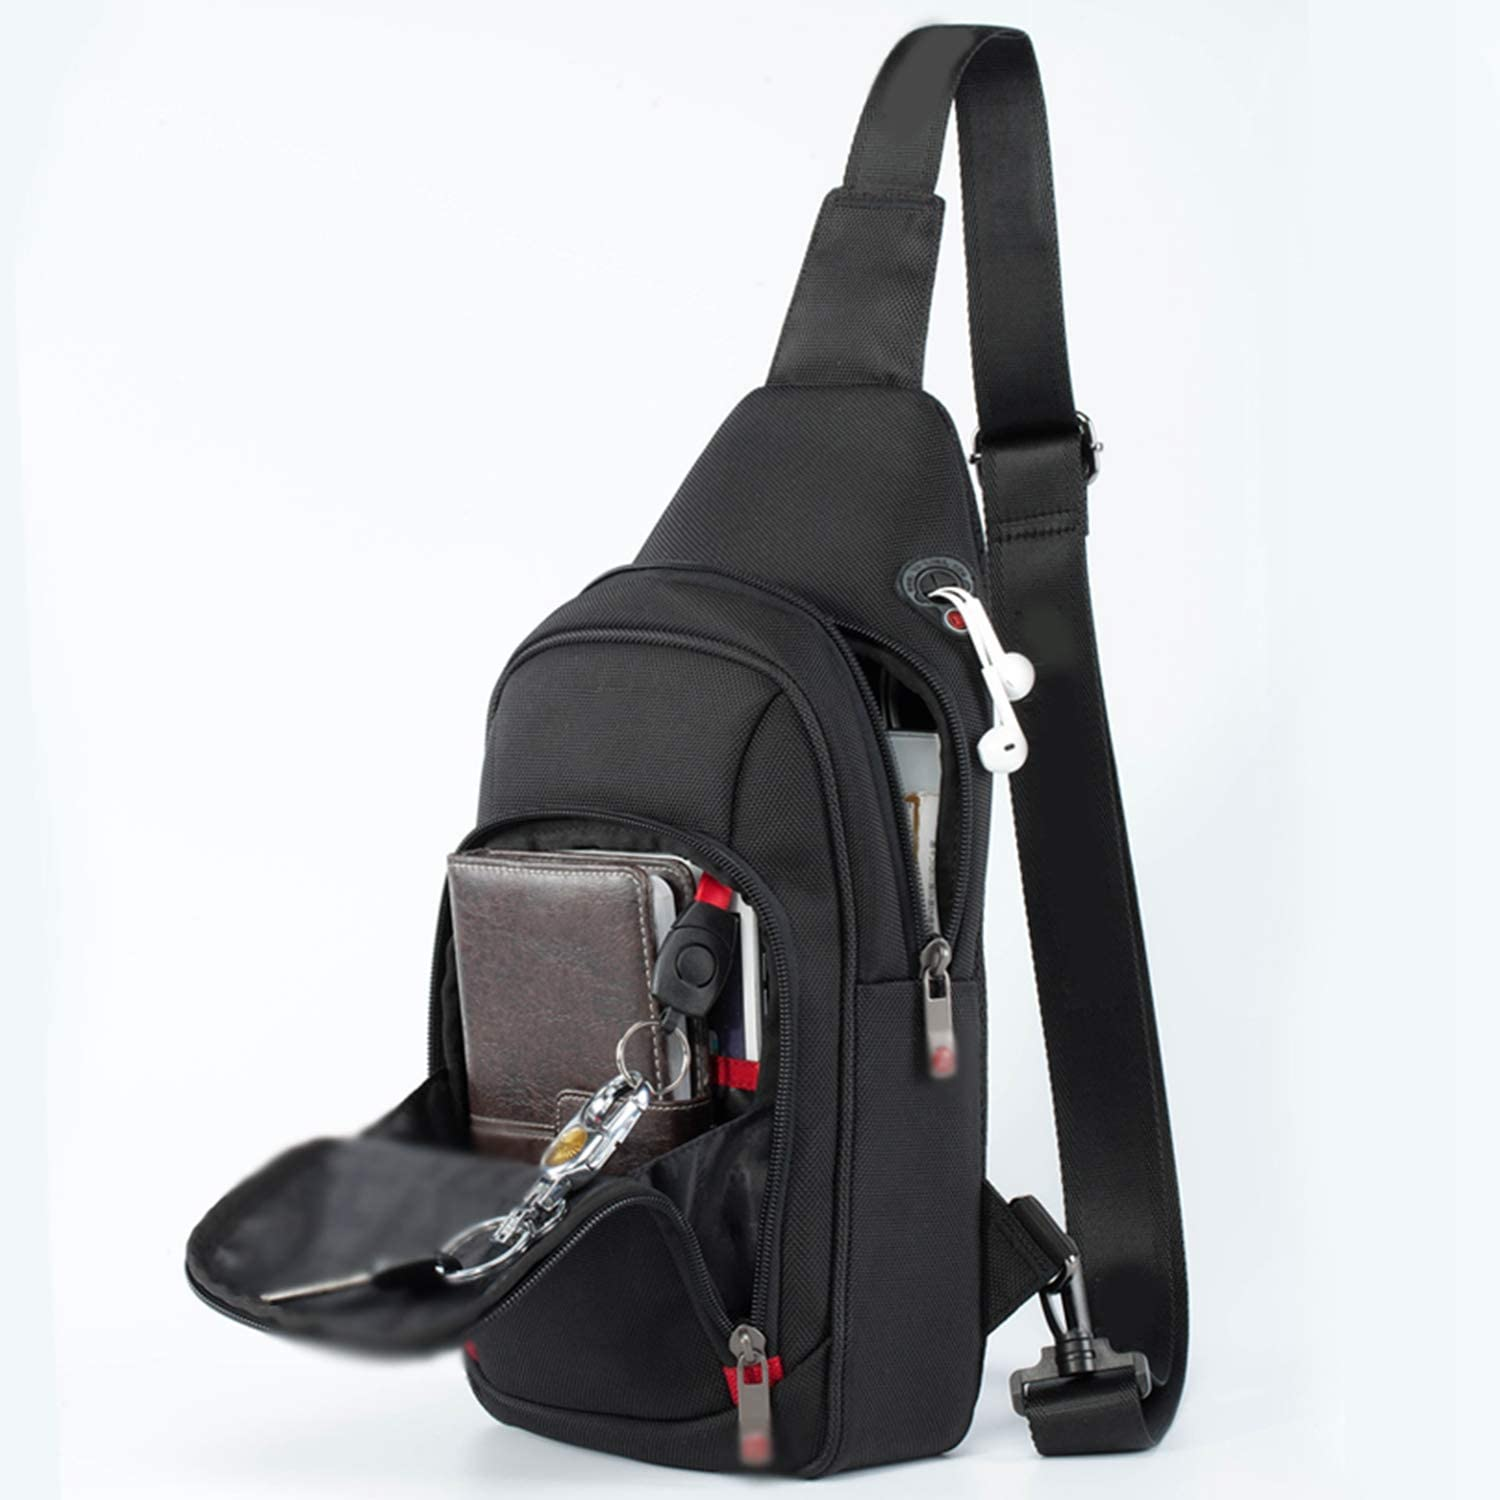 Crossbody Bags for Men Messenger Chest Bag Pack Casual Bag Waterproof Nylon Single Shoulder Strap Pack Fashion